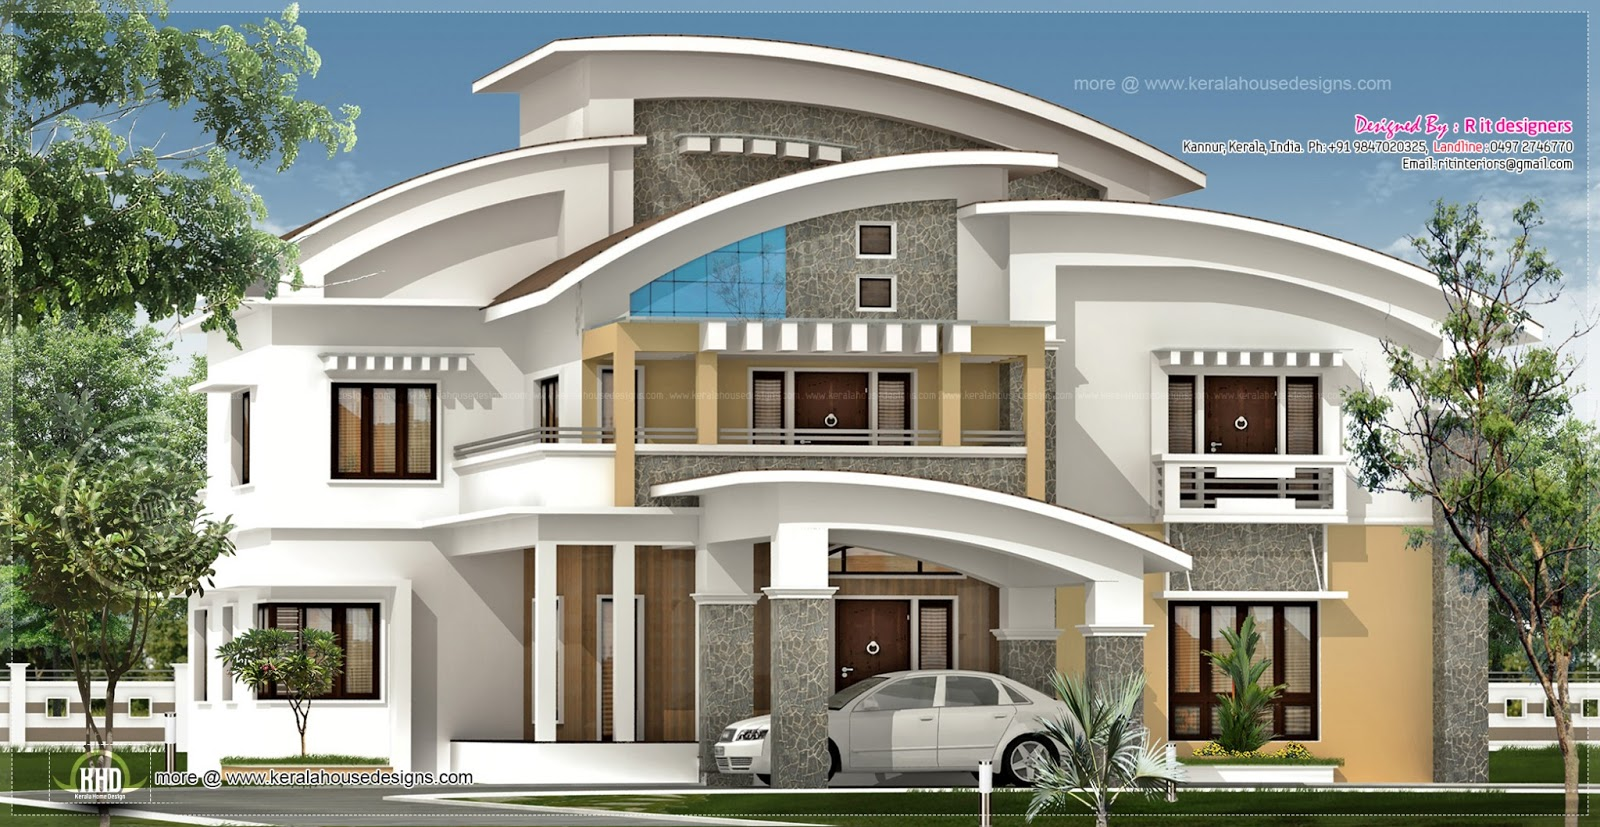 3750 square feet luxury villa exterior style house 3d models Executive house designs